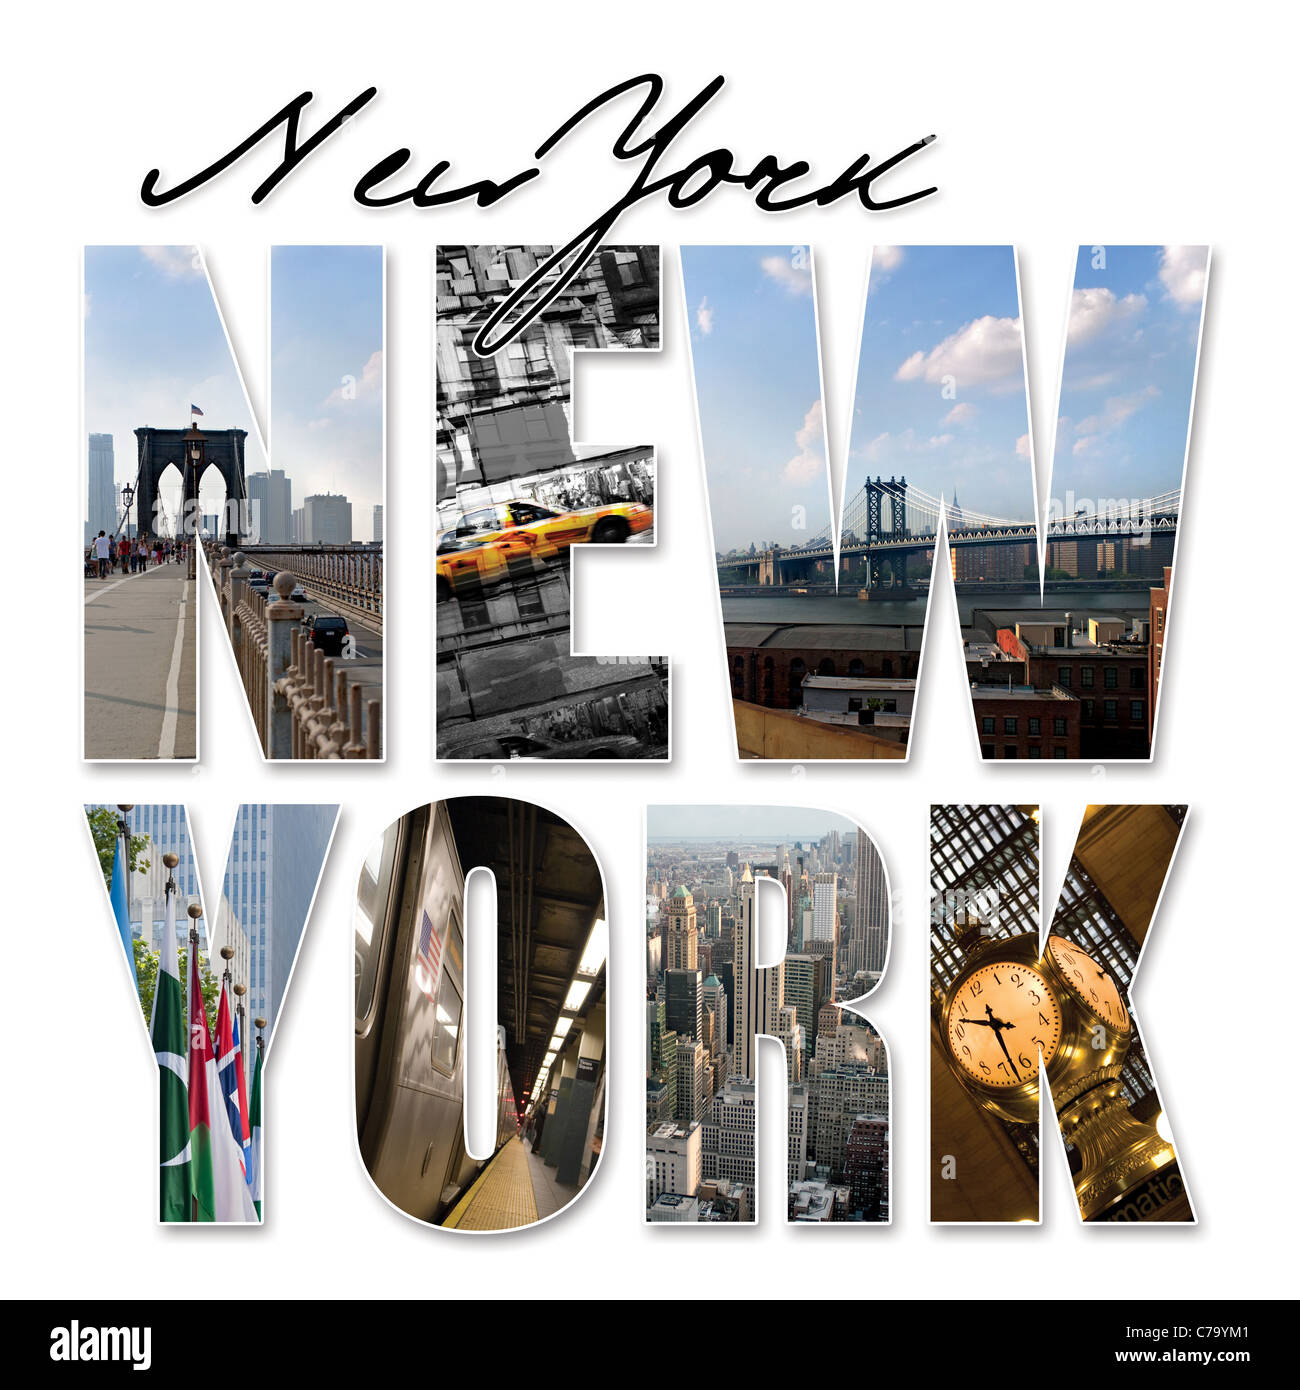 A New York City themed montage or collage featuring different famous locations and areas of The Big Apple. - Stock Image